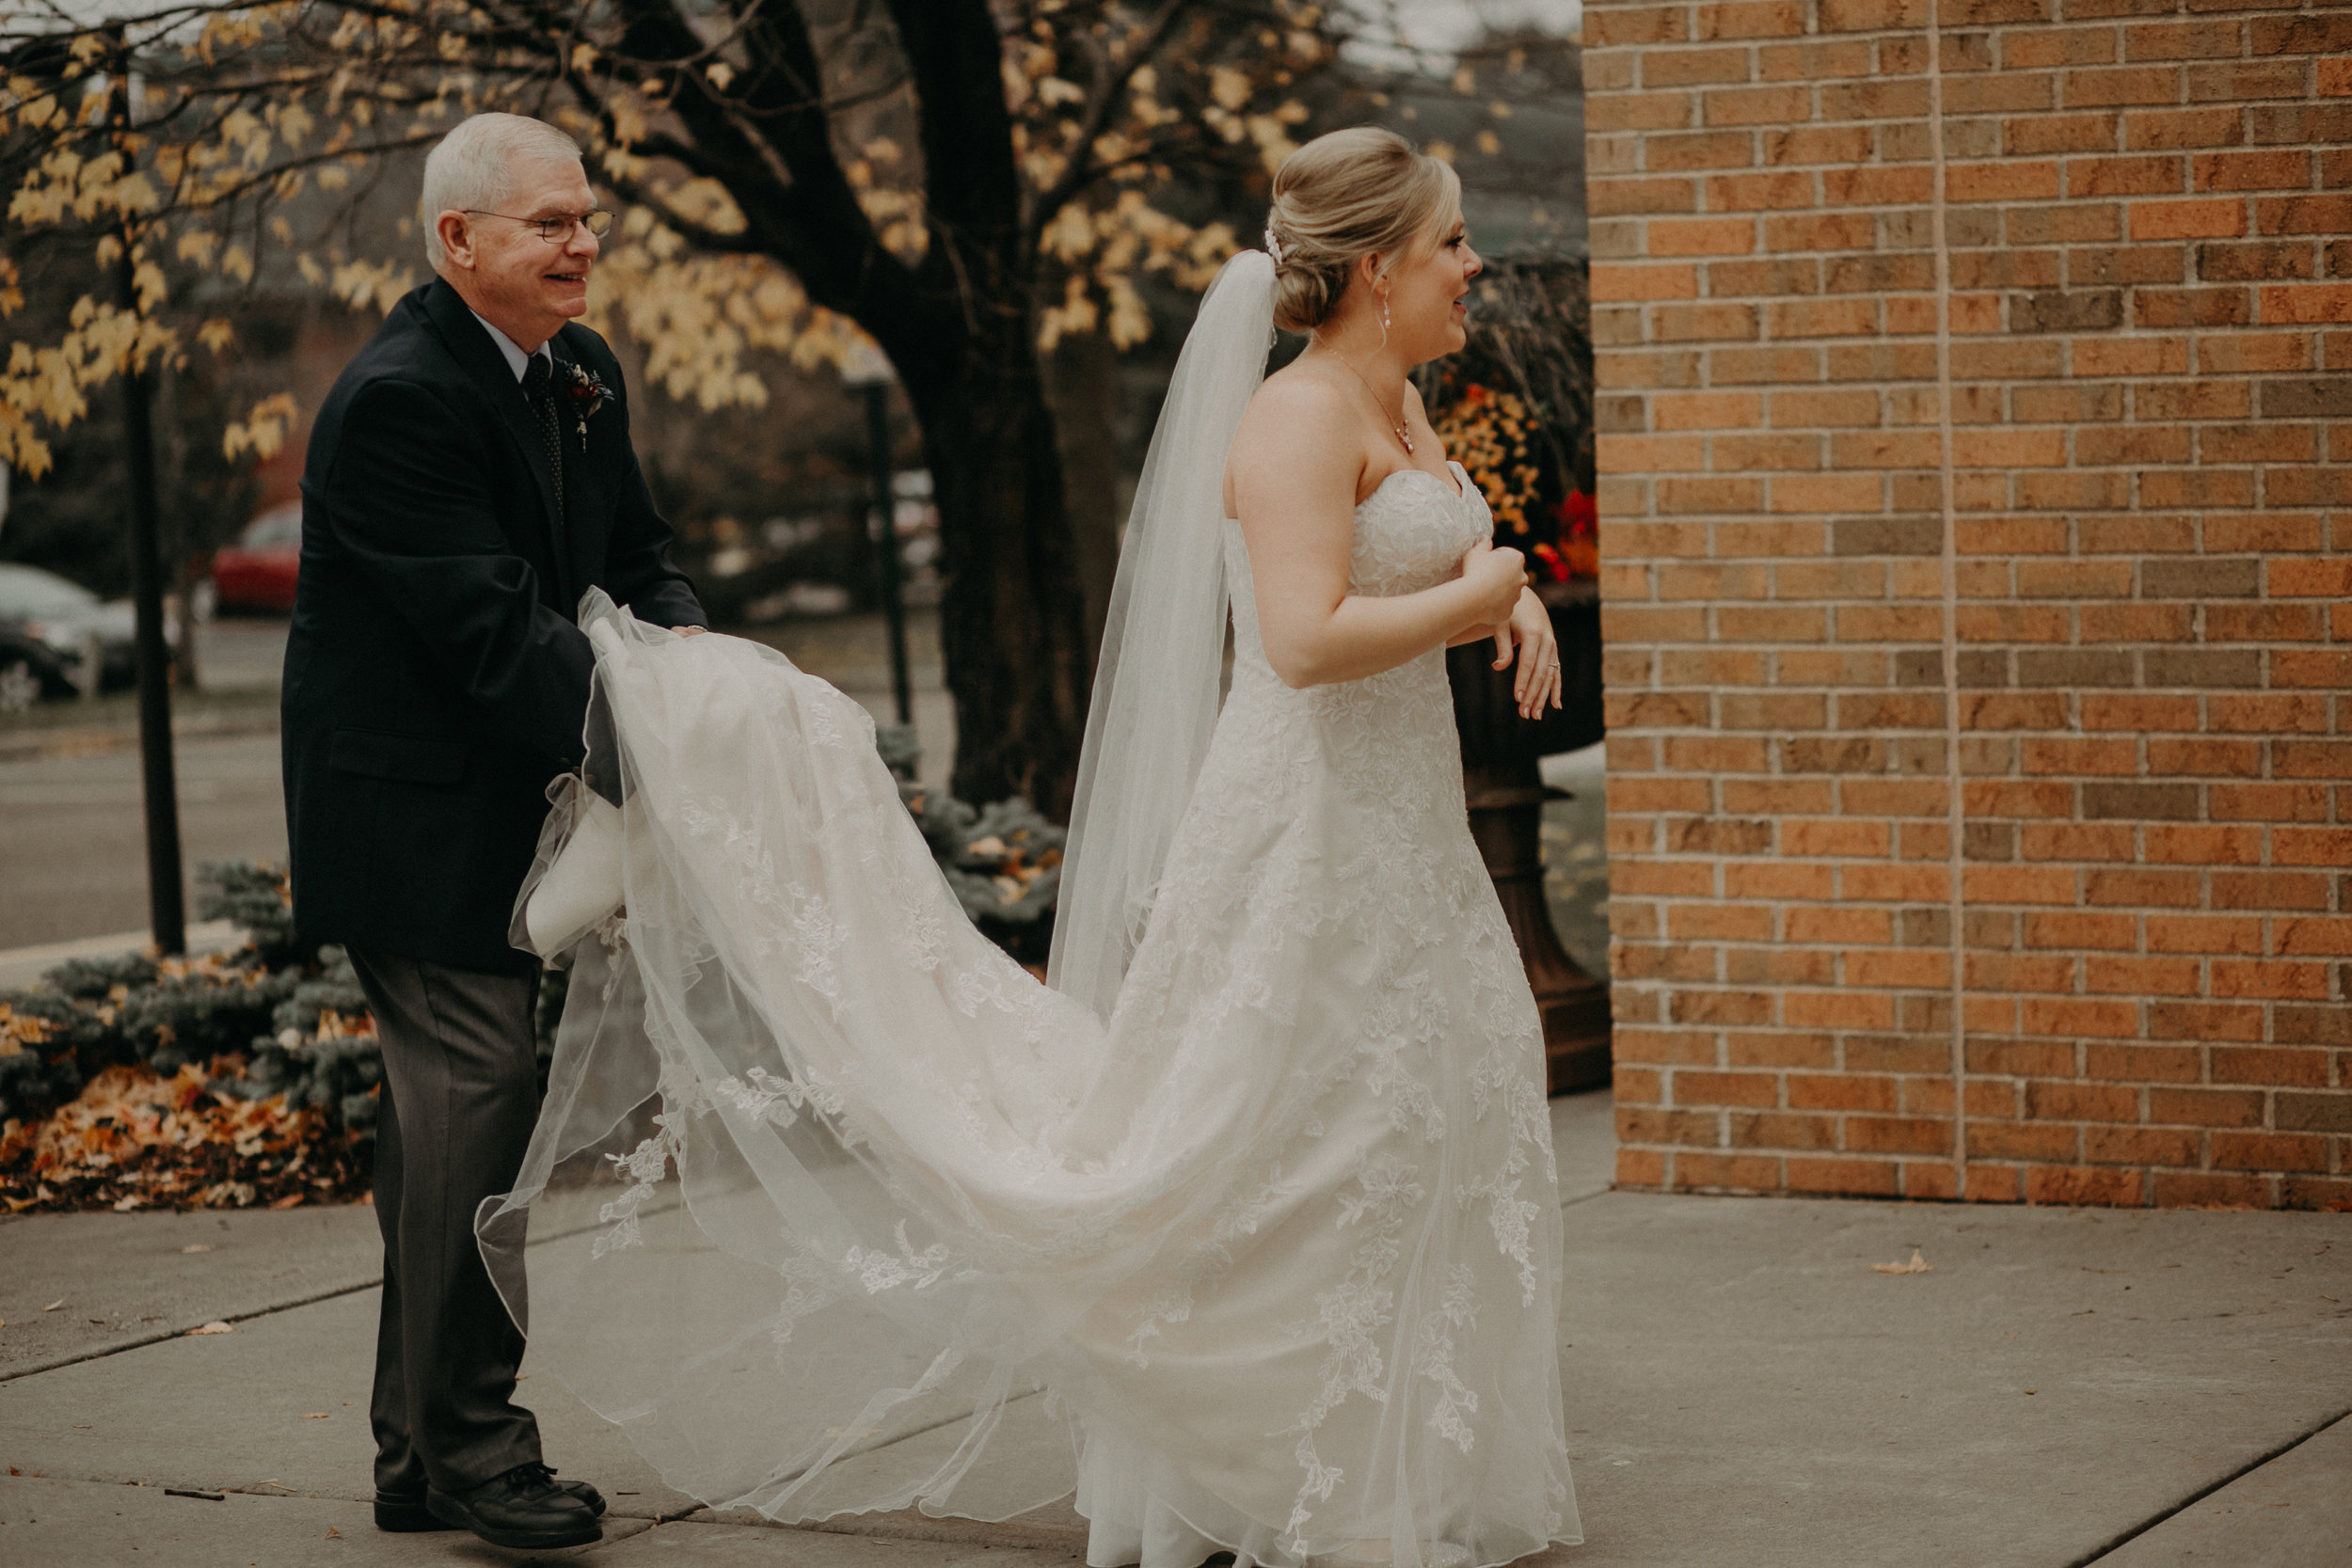 moody and authentic wedding photographer Andrea Wagner captures moments of a River Falls WI wedding day